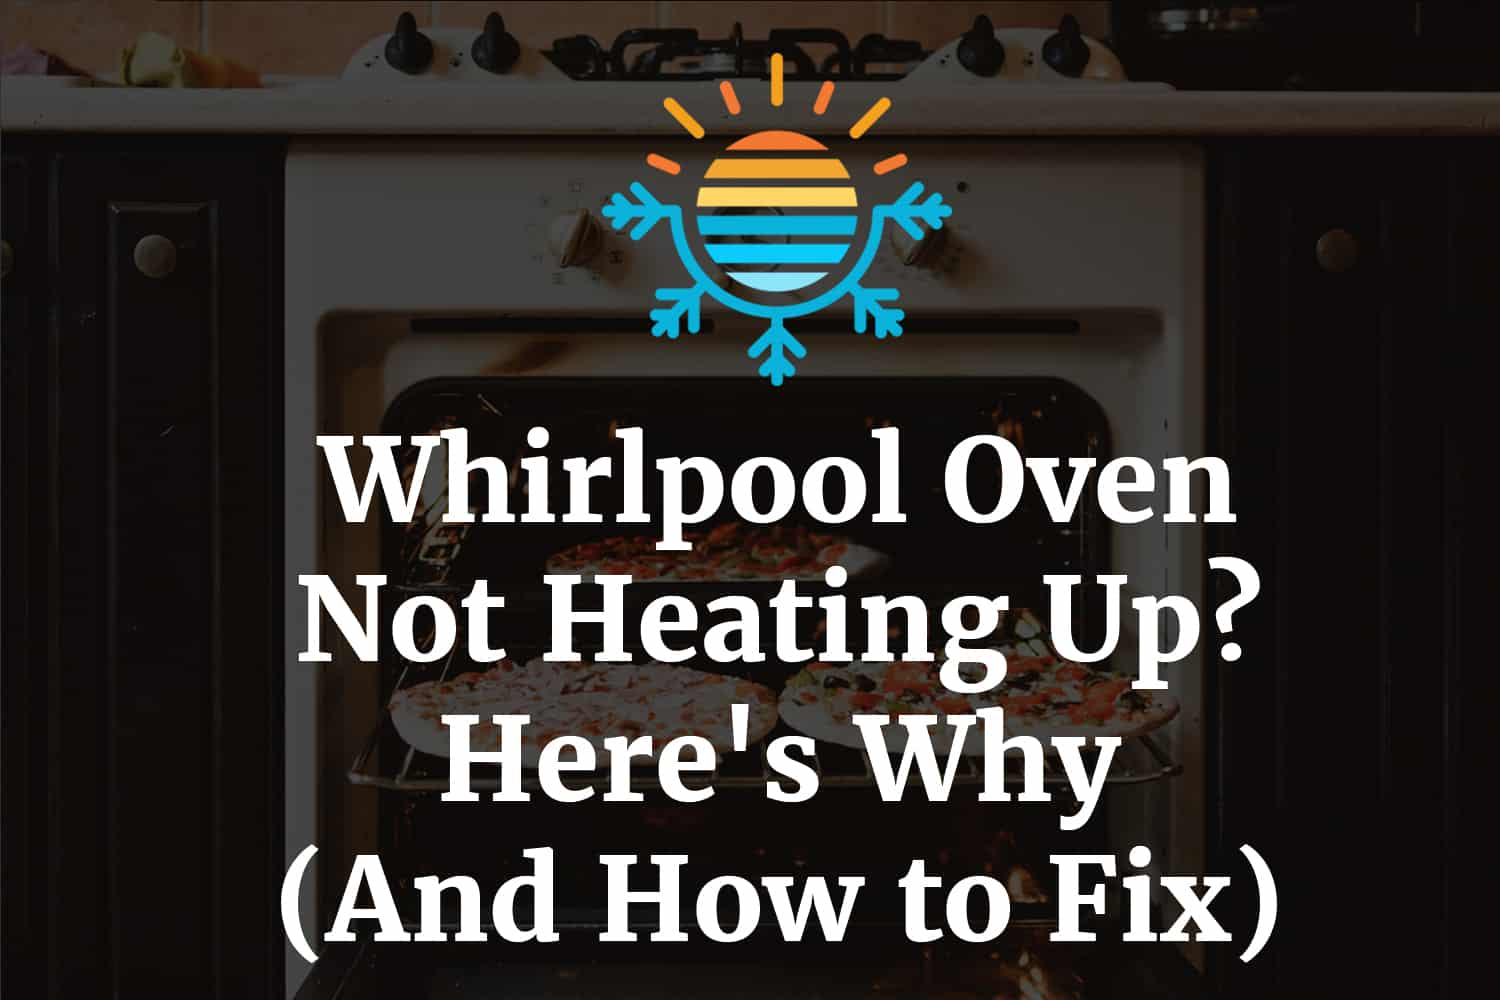 Whirlpool oven not heating up